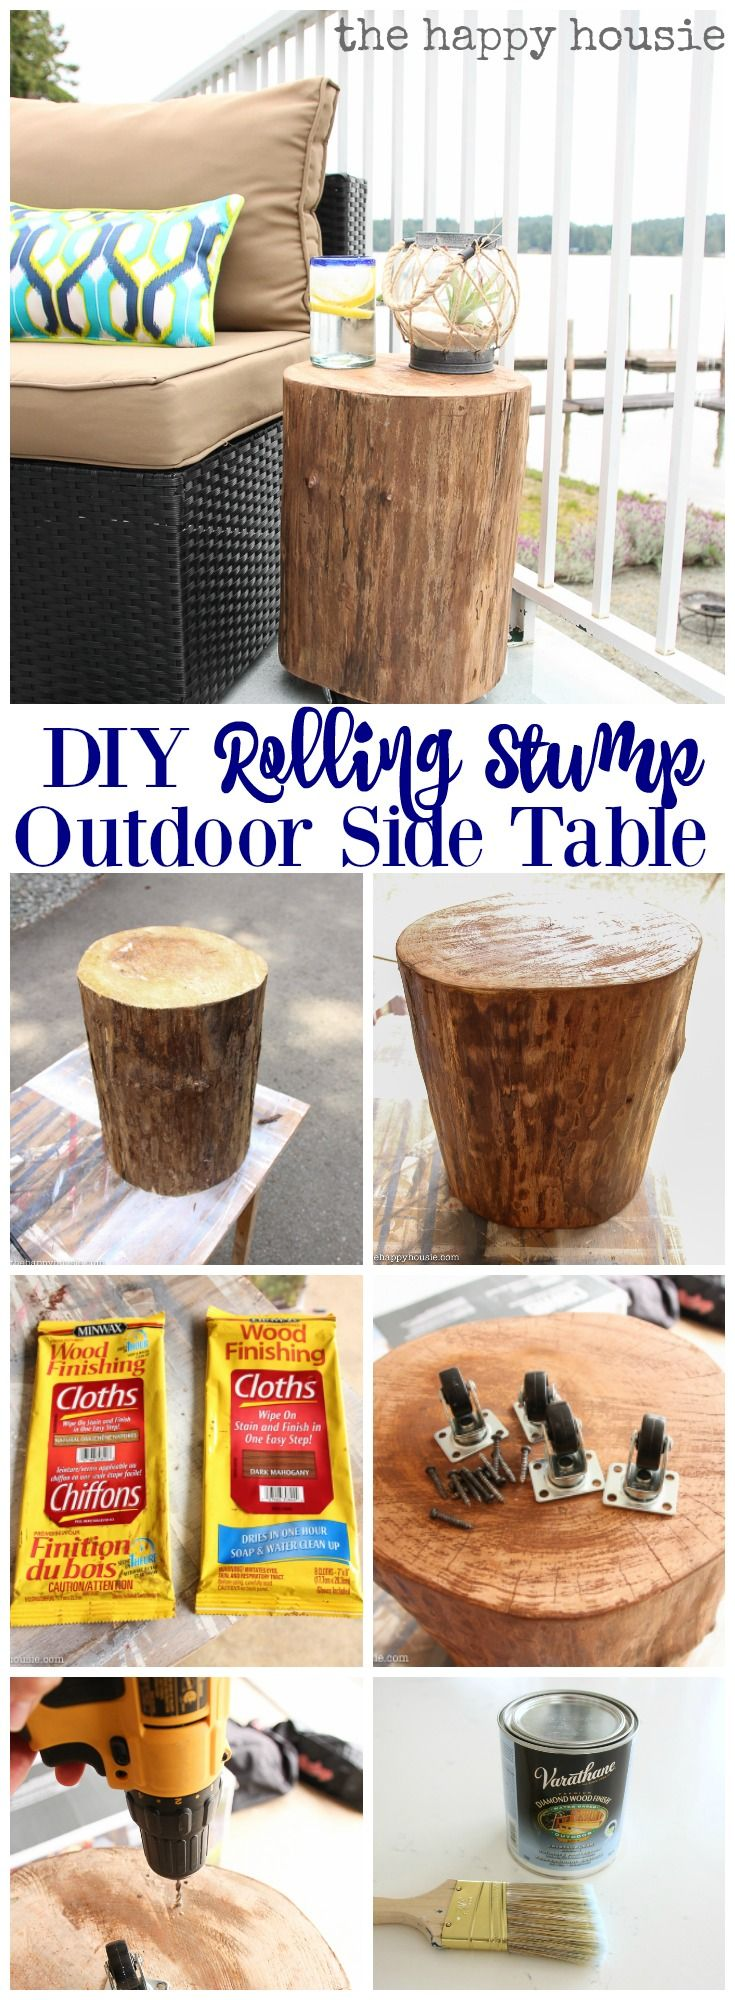 diy outdoor rolling stump side table hometalk spring inspiration decor super thrifty and easy project catnapper rocker recliner mid century furniture tall pub set end ikea mission